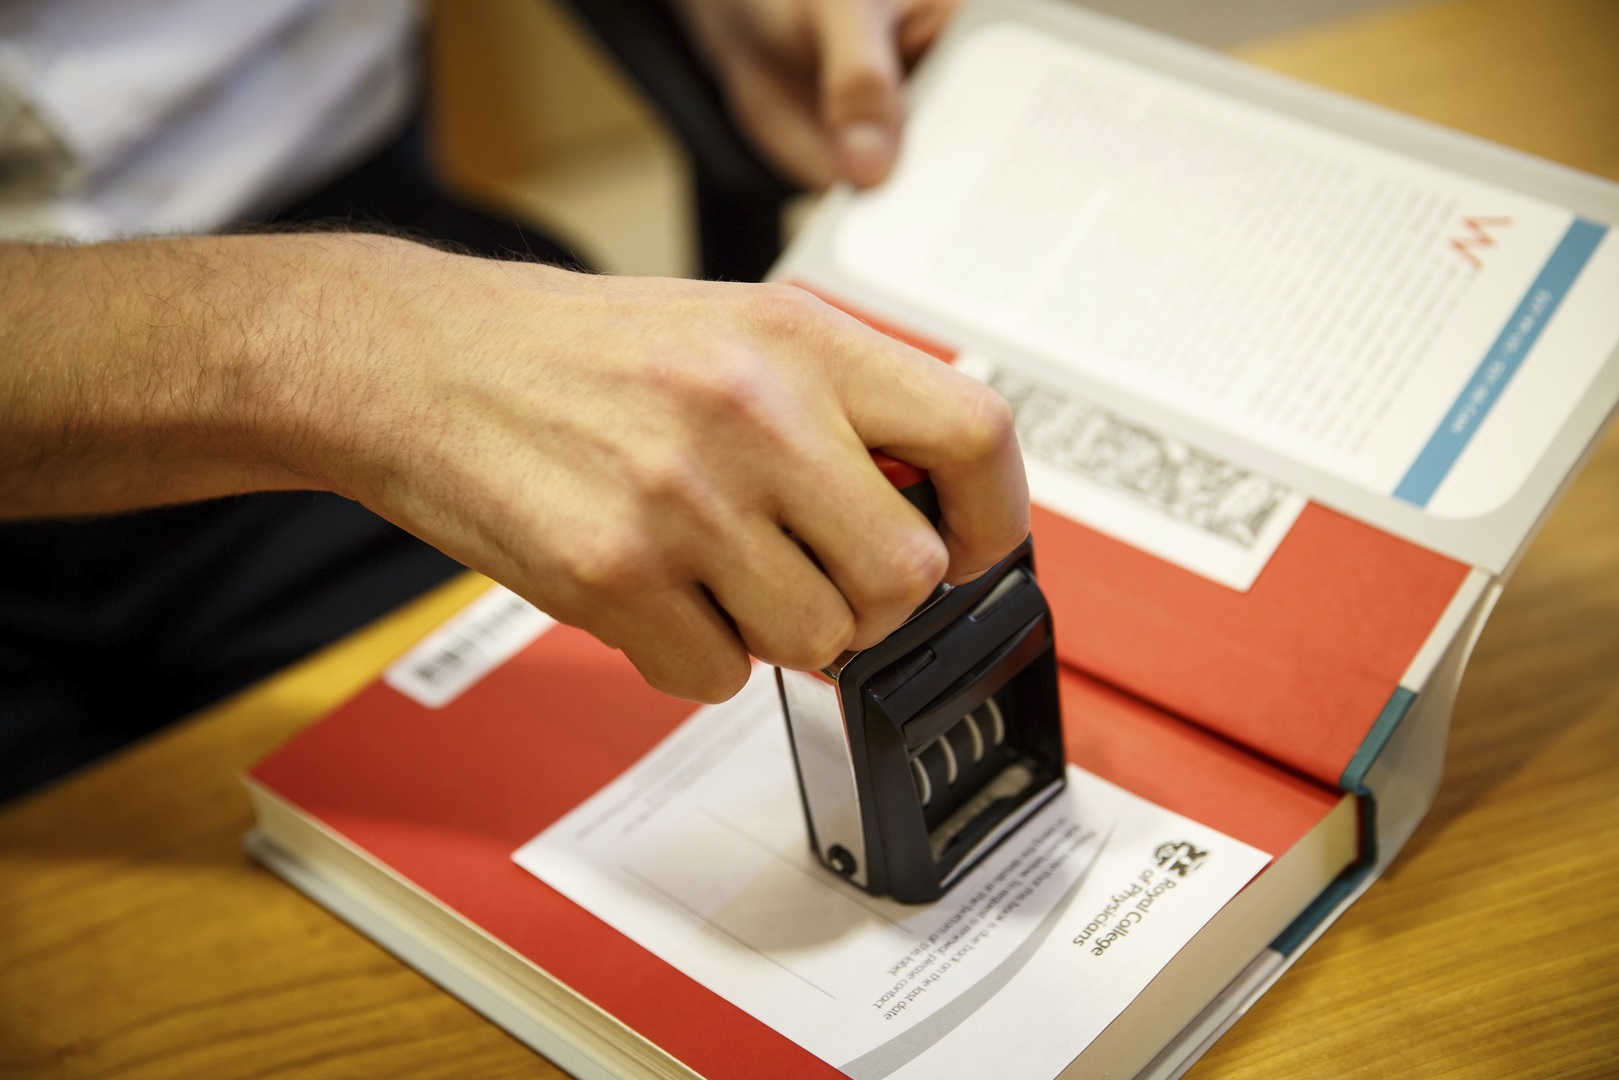 Librarian stamping a date in a book